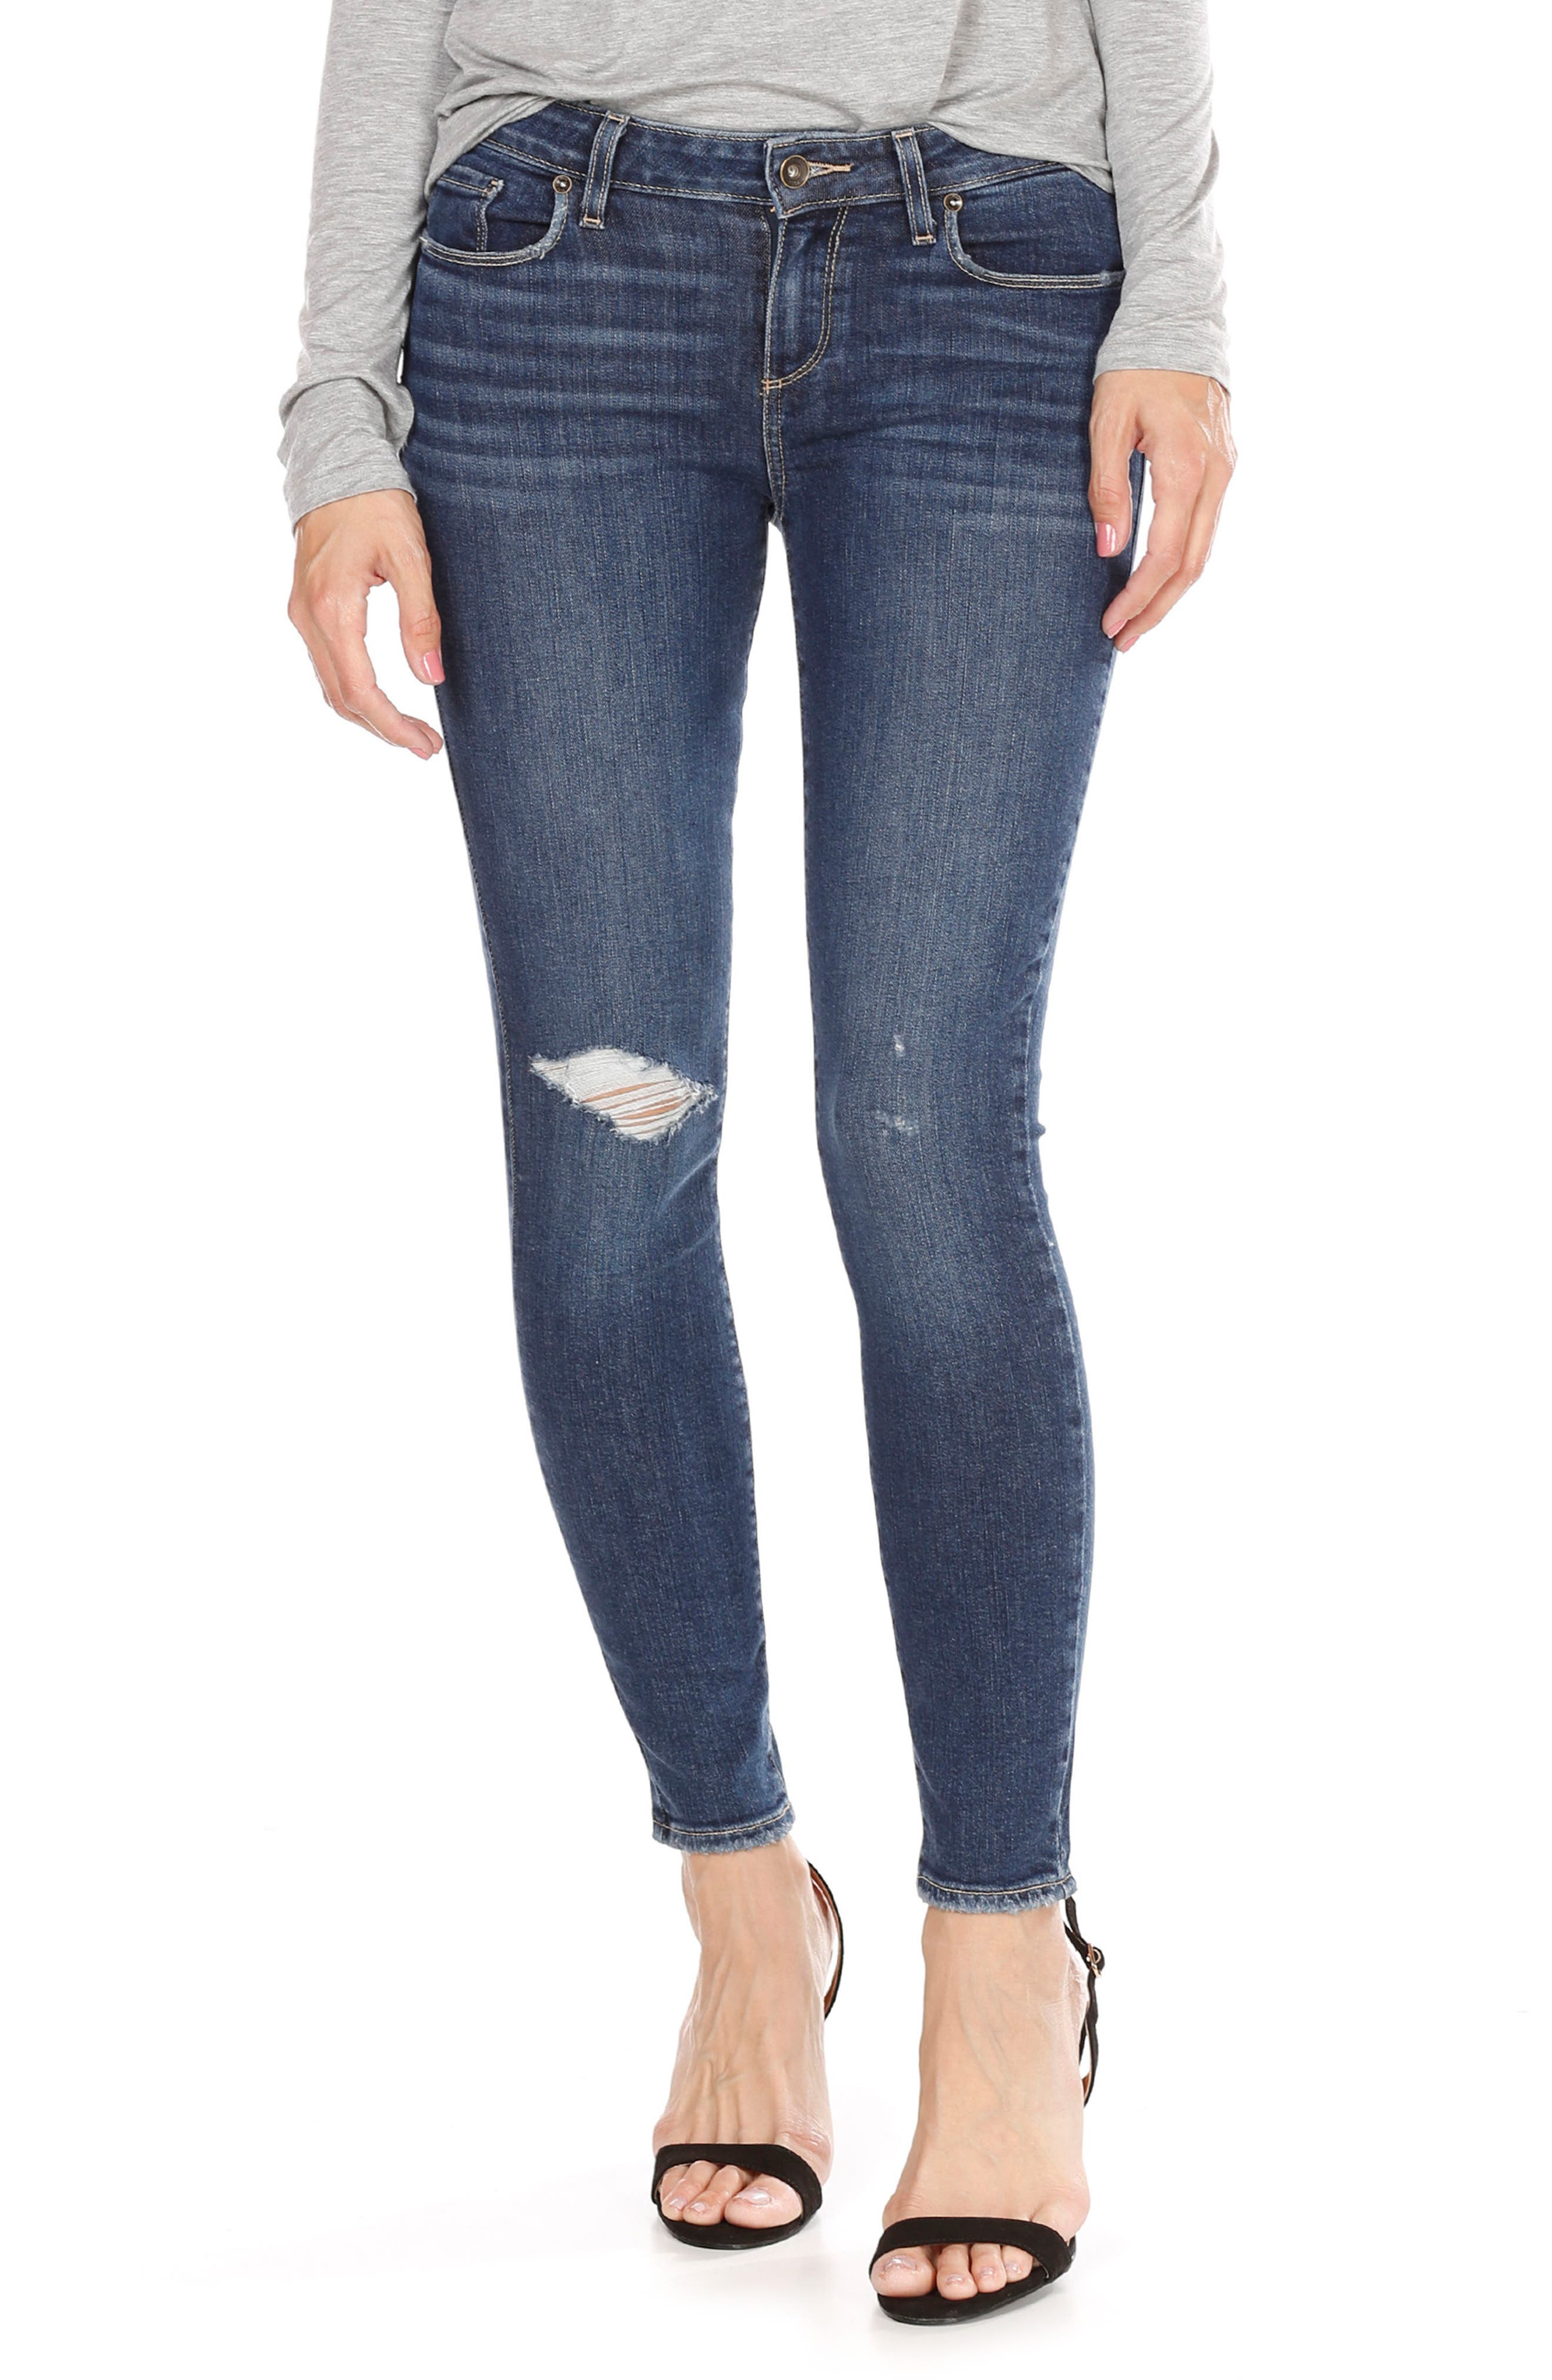 Verdugo Ripped Ankle Skinny Jeans,                             Main thumbnail 1, color,                             Addax Destructed